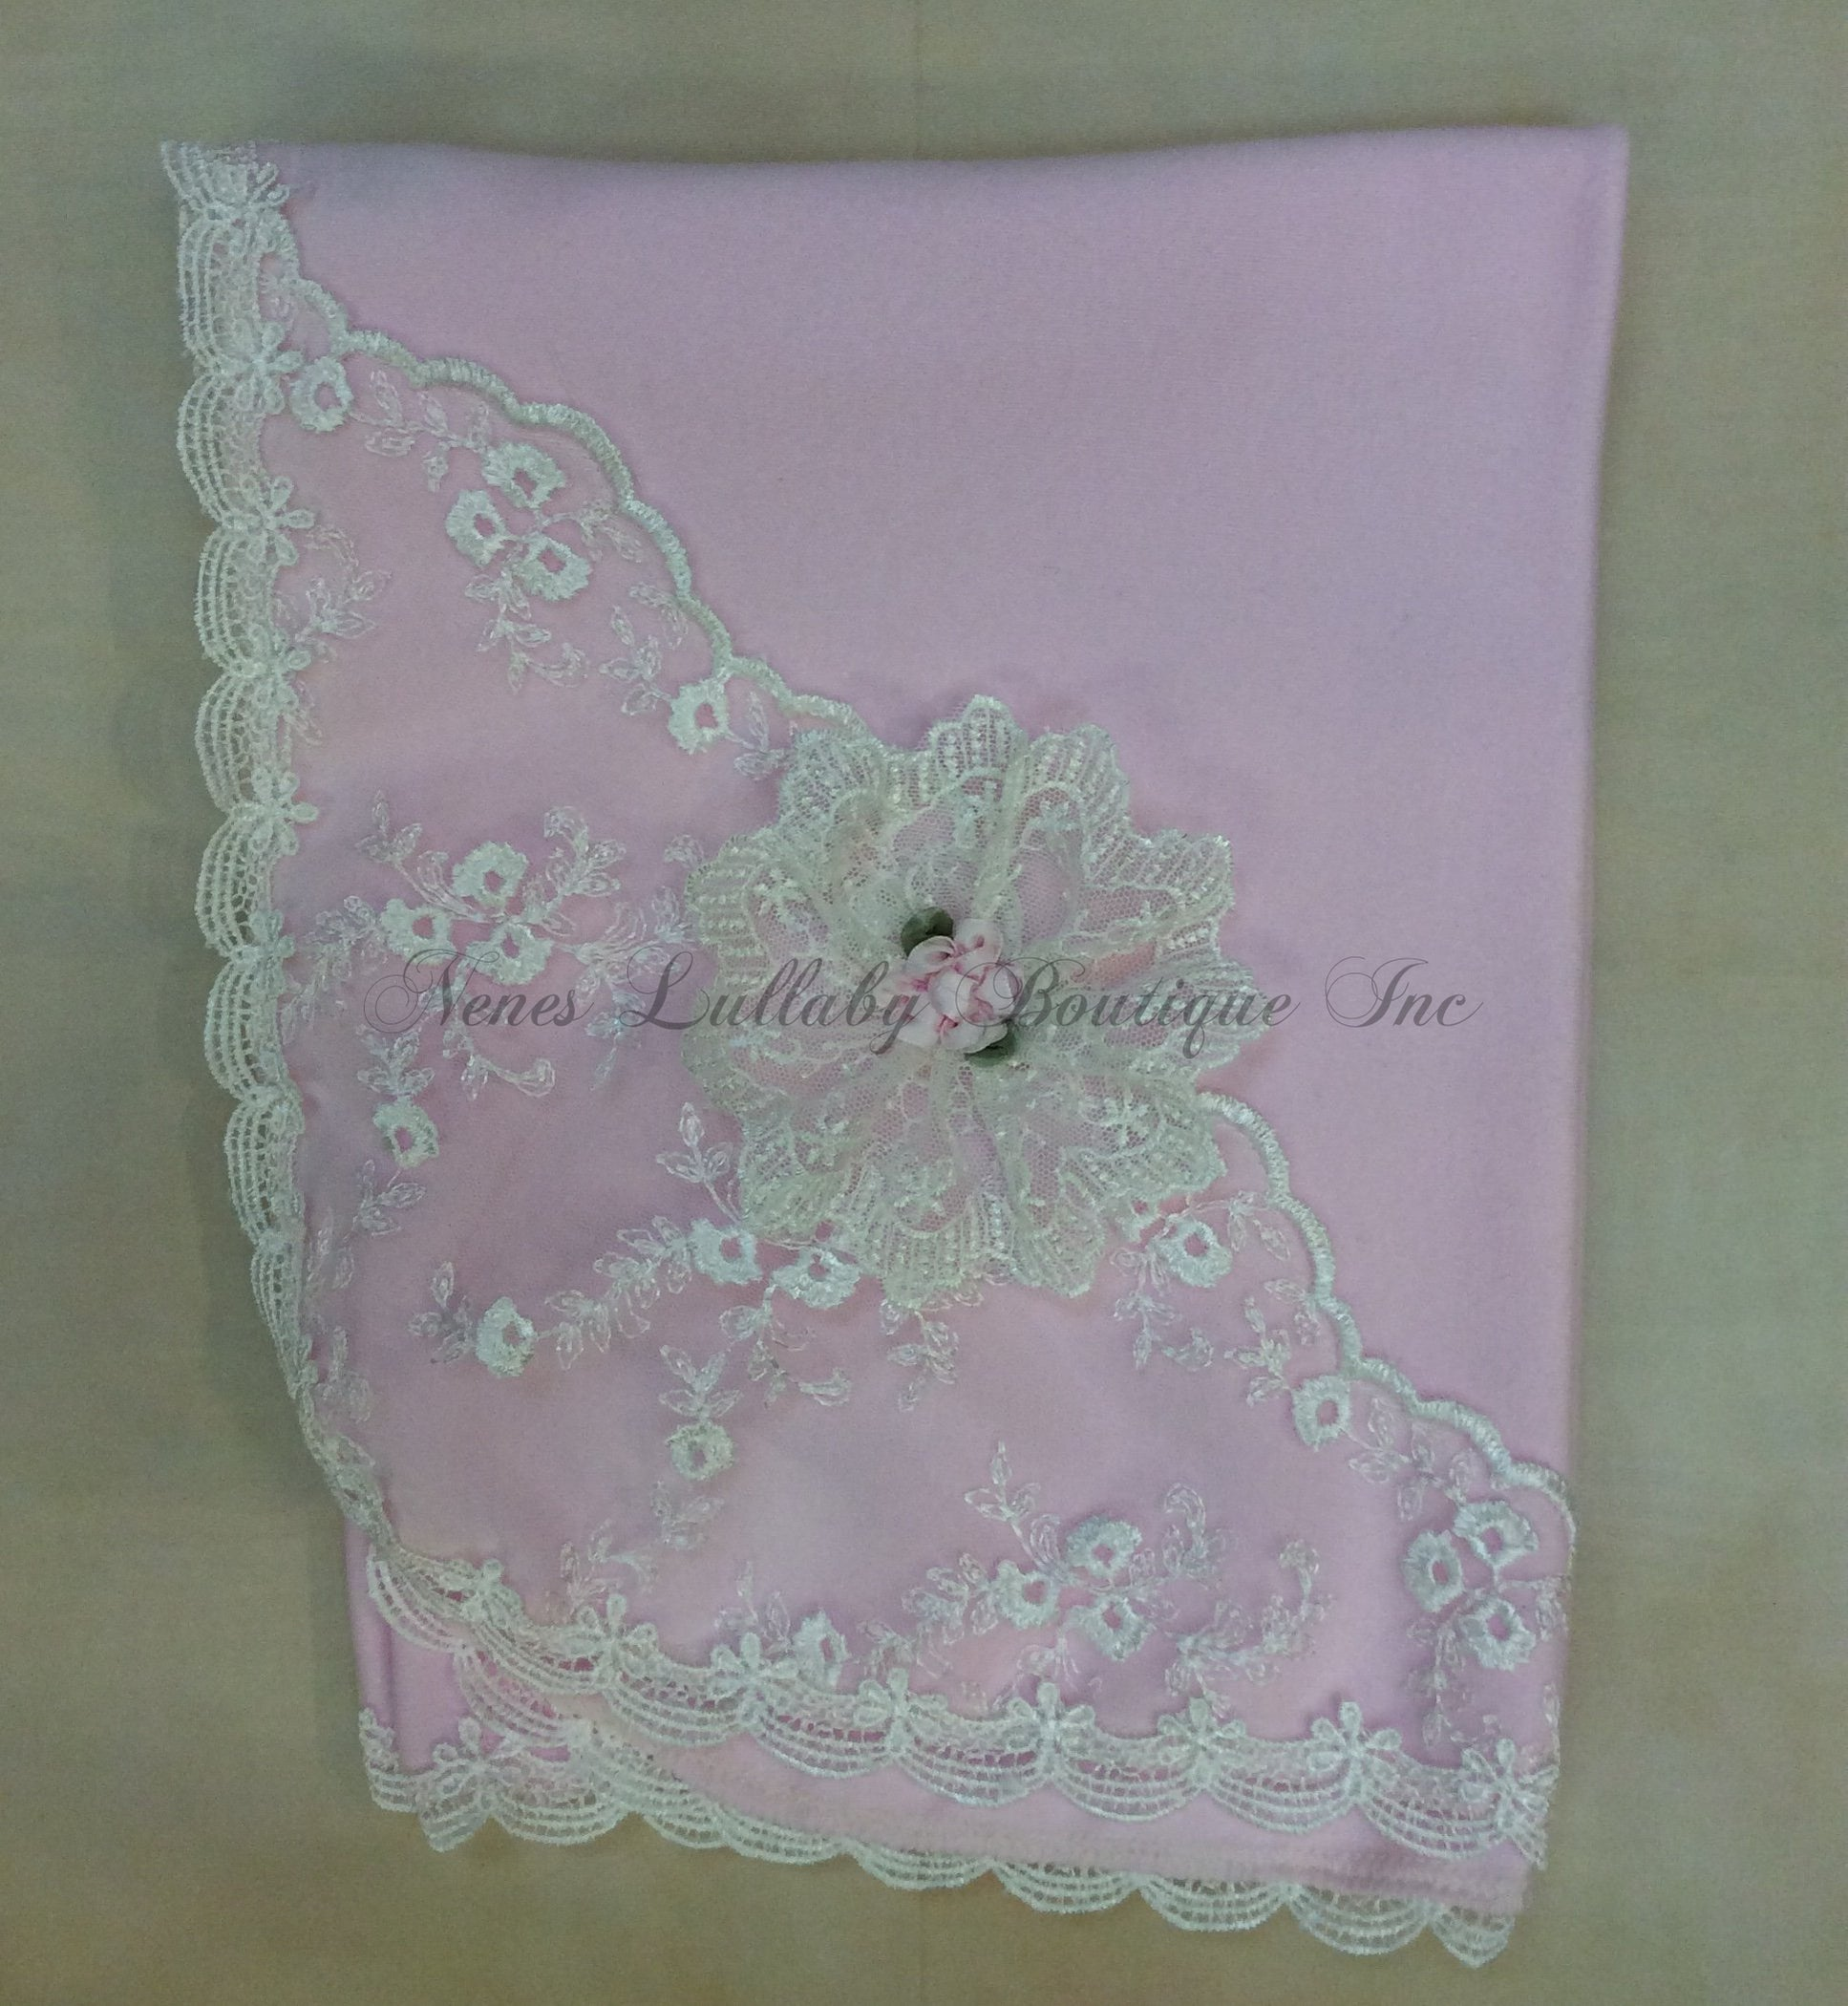 Katie Rose Pink Breanna Blanket - Nenes Lullaby Boutique Inc